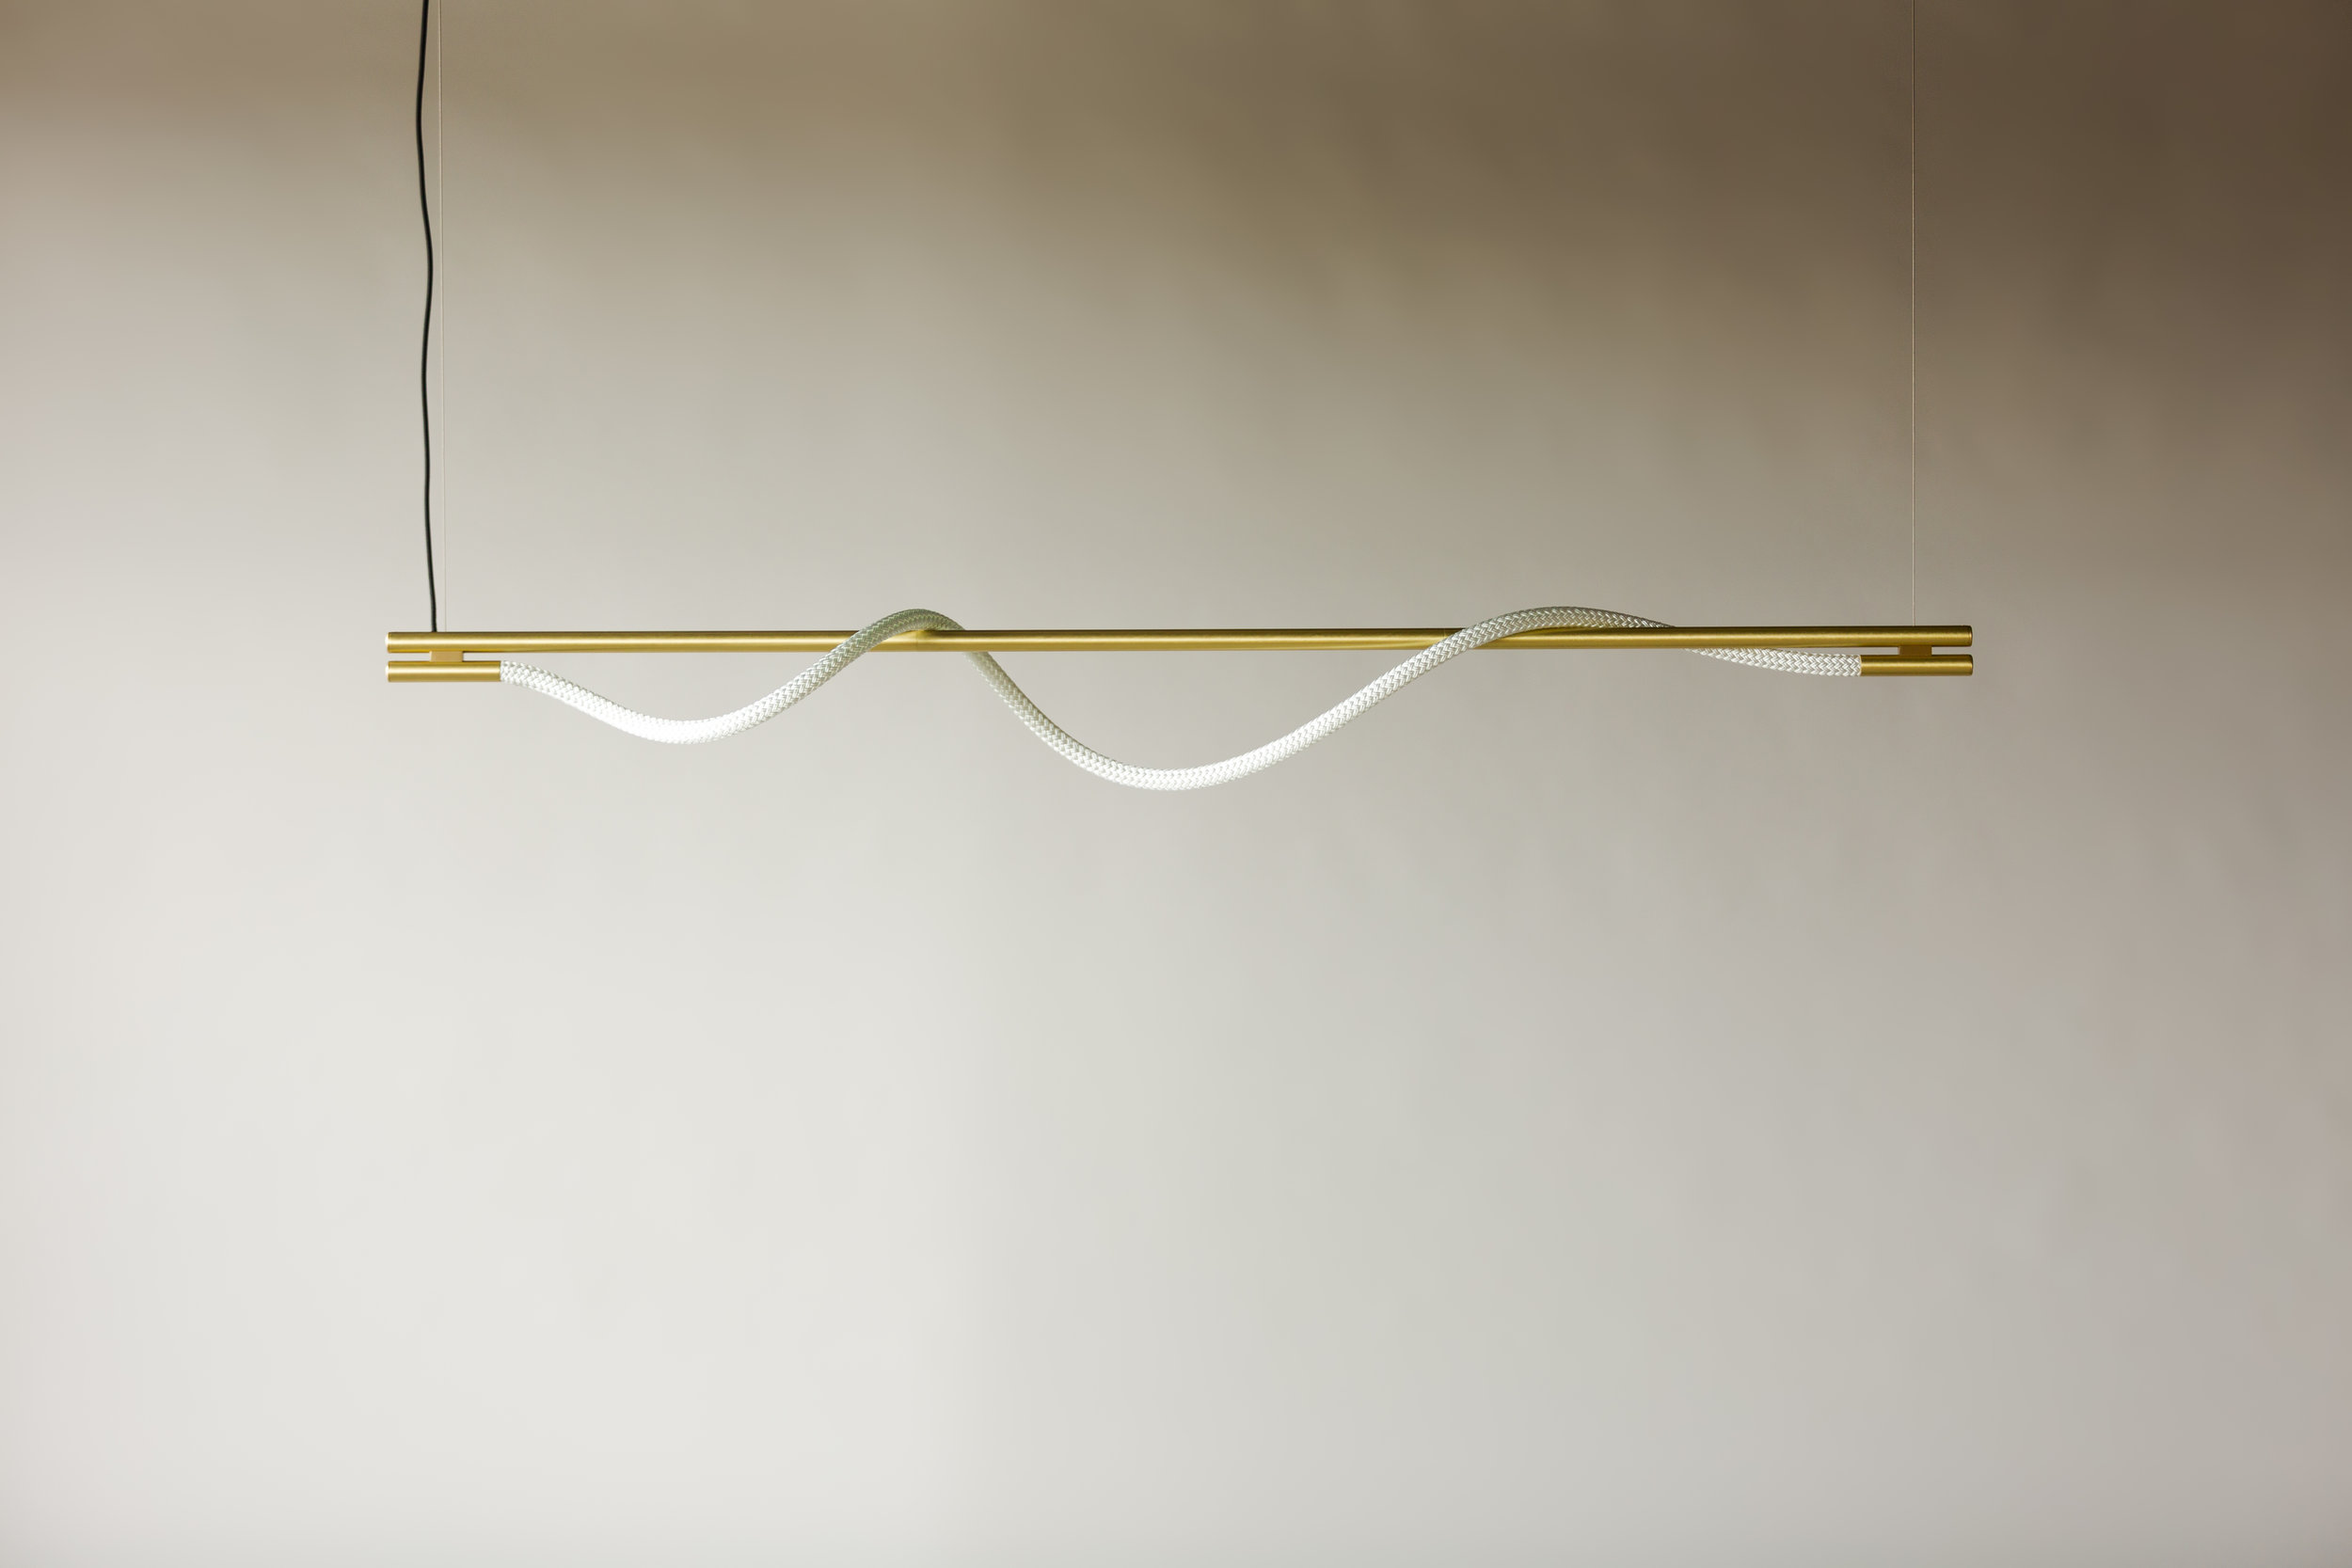 6' Surrey Suspension III - Cable  (pictured in Satin Brass / turned off)